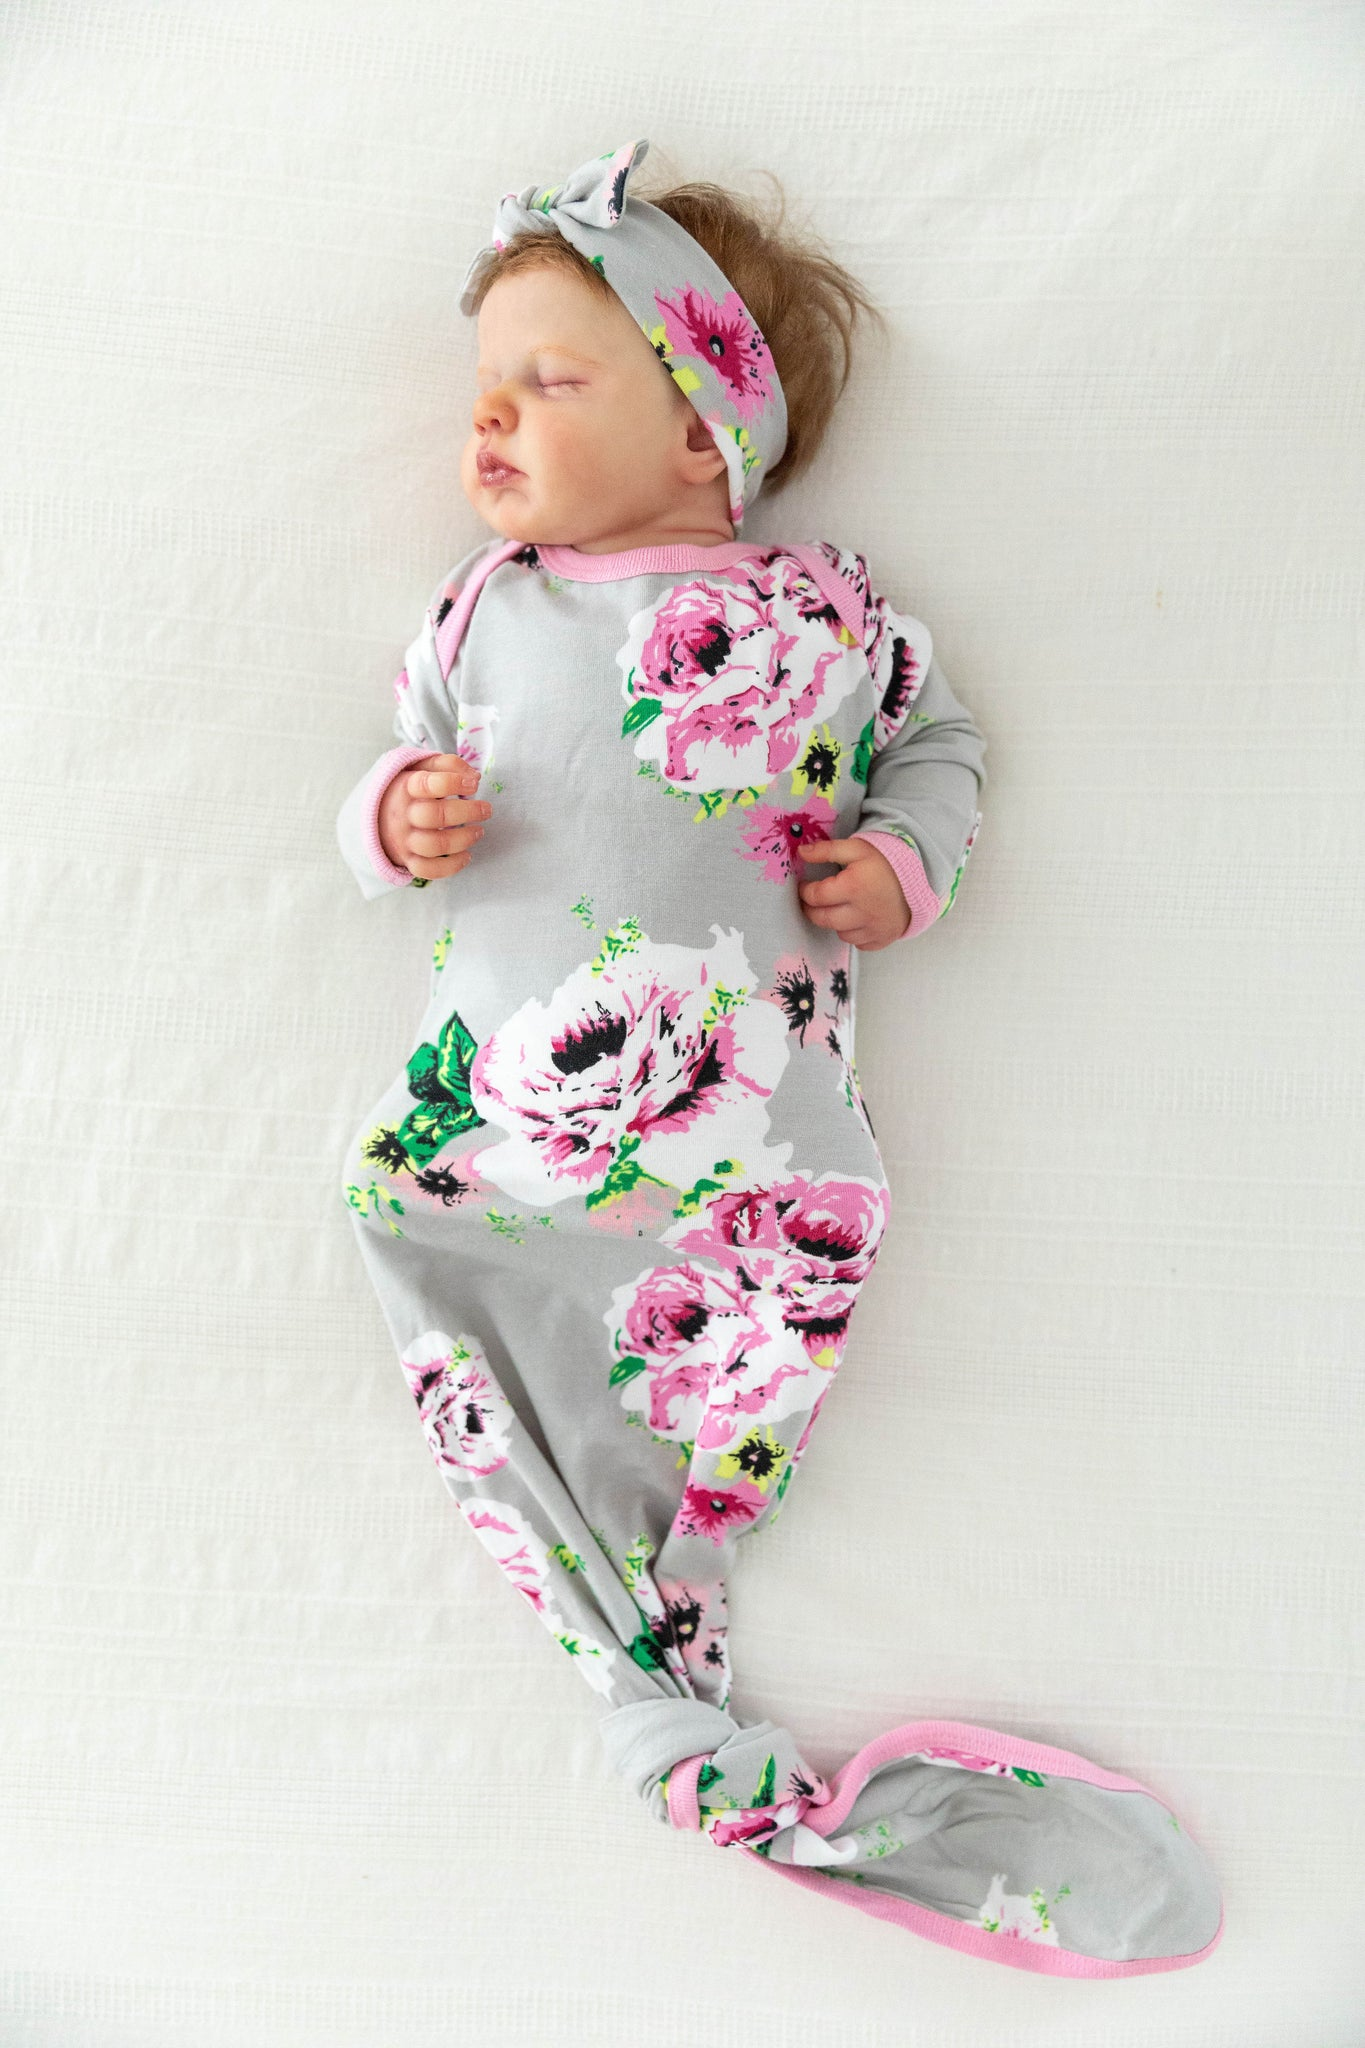 Olivia Knotted Baby Gown & Headband